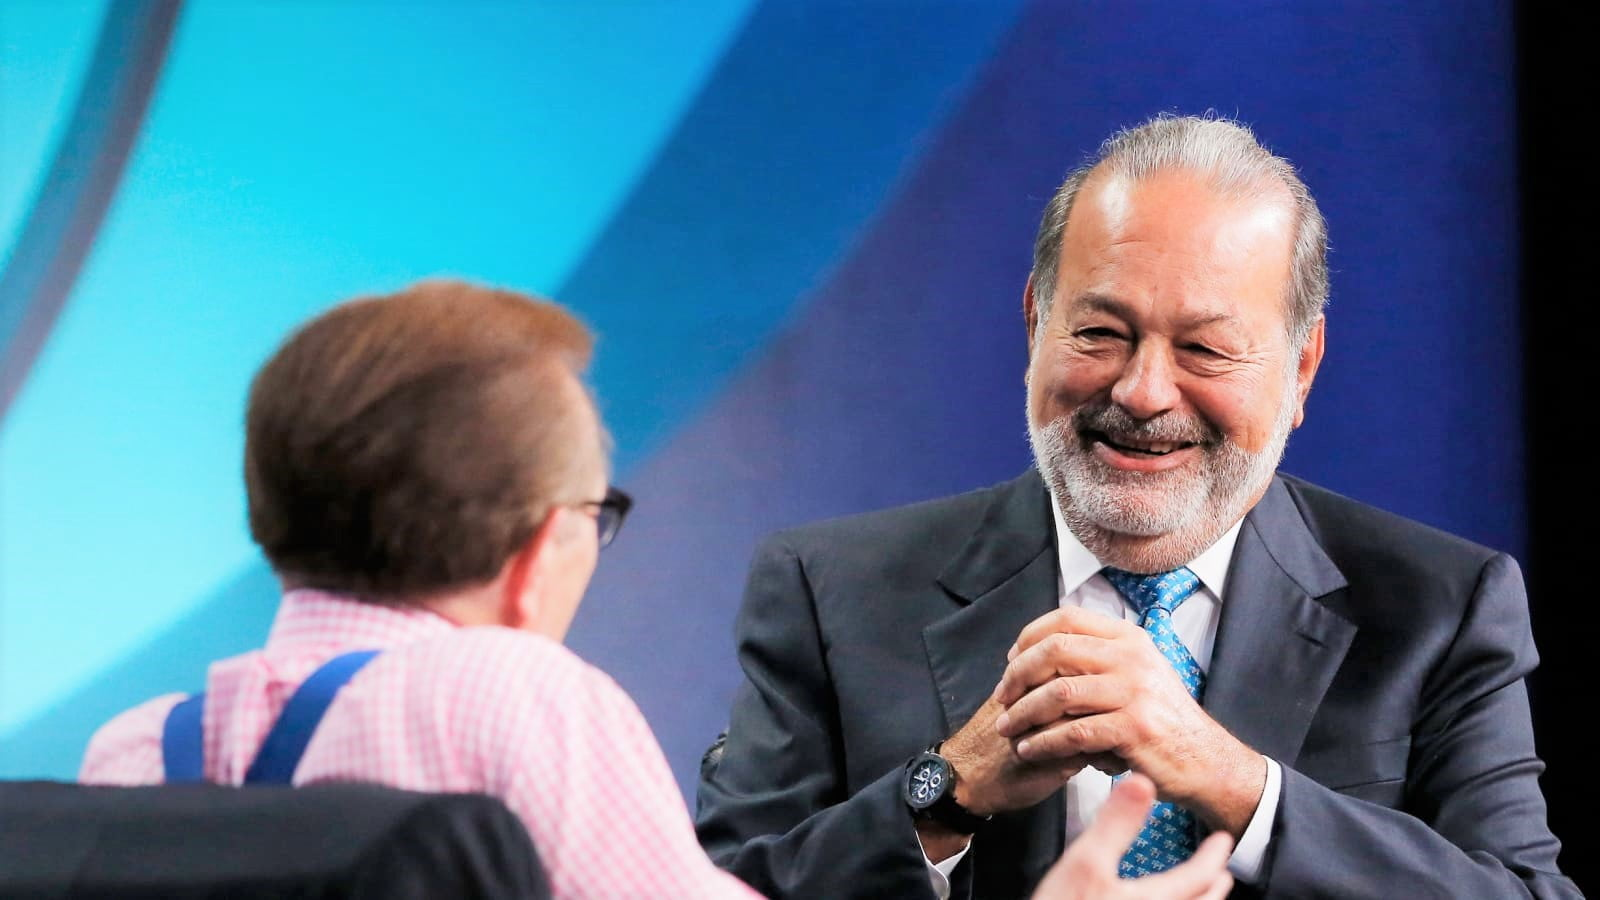 Billionaire Carlos Slim attributes his success at a young age to this person